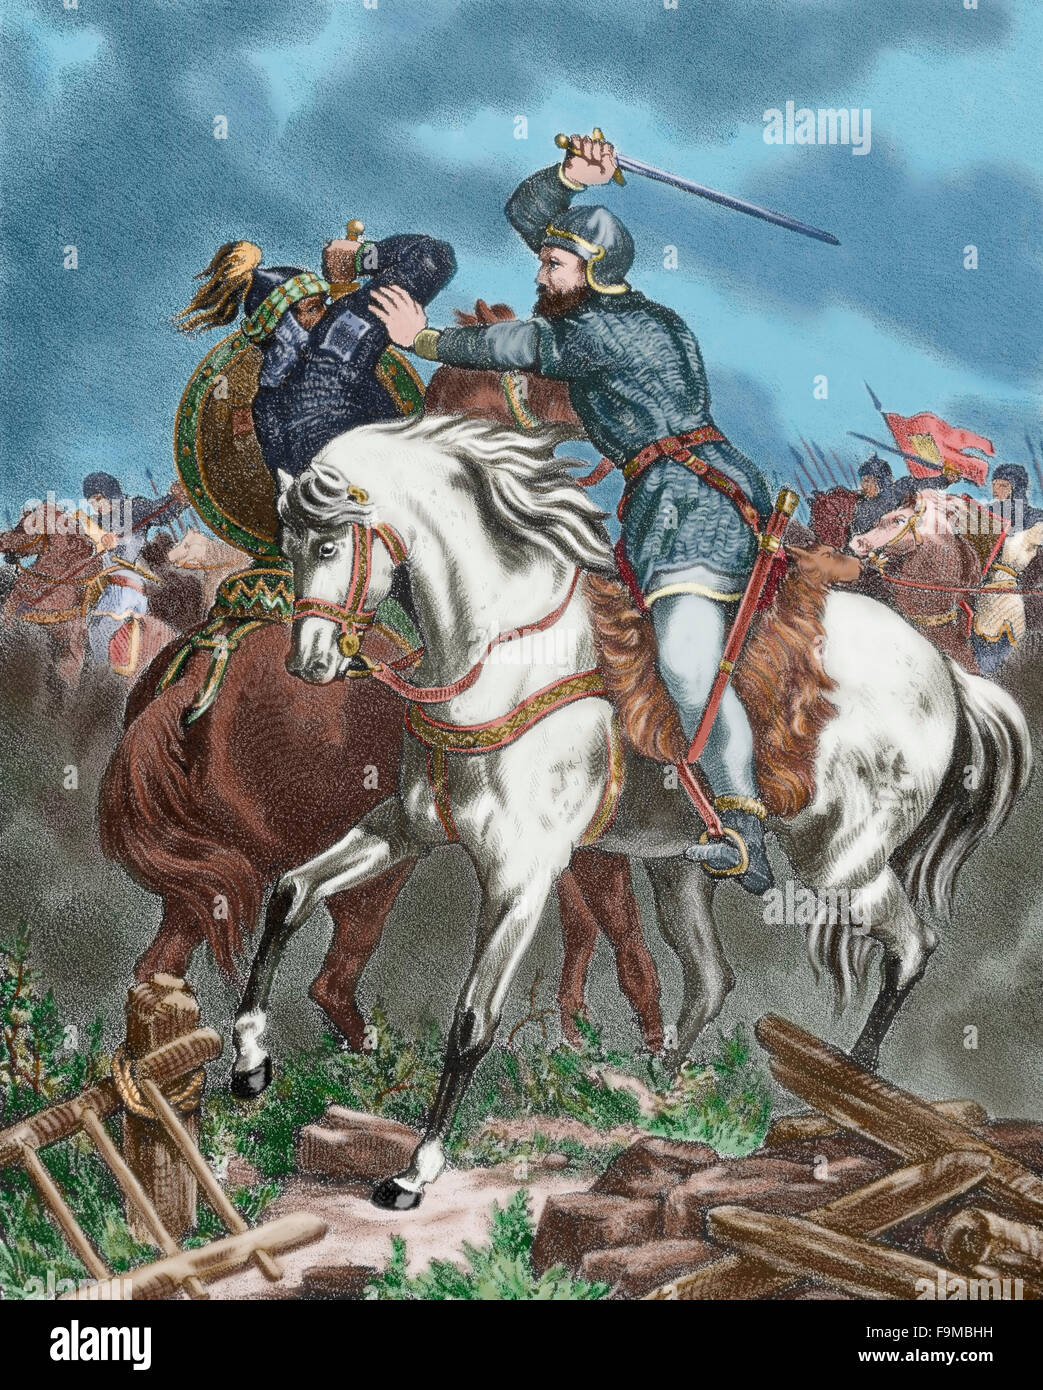 Spain. Reconquest. Battle of Sagrajas, also called Zalaca or Zallaqa (23 October 1086) between the Almoravid army - Stock Image